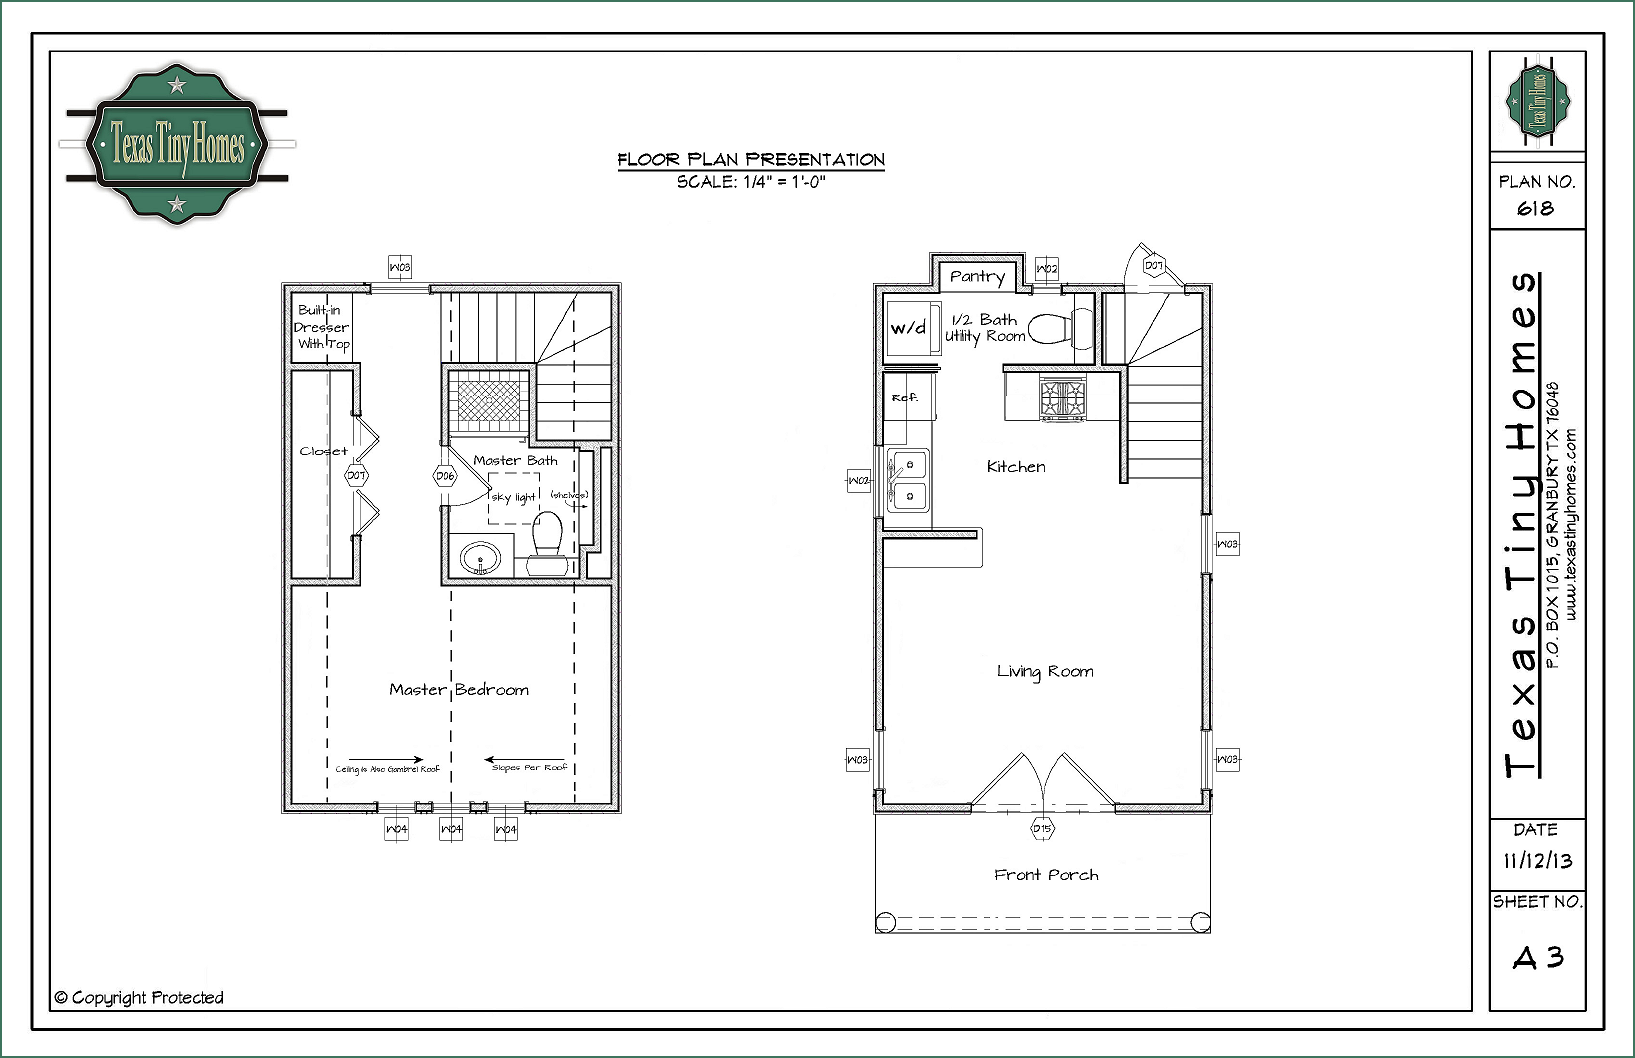 Texas Tiny Homes Plan 618 Small Floor Plans Simple Floor Plans Floor Plans